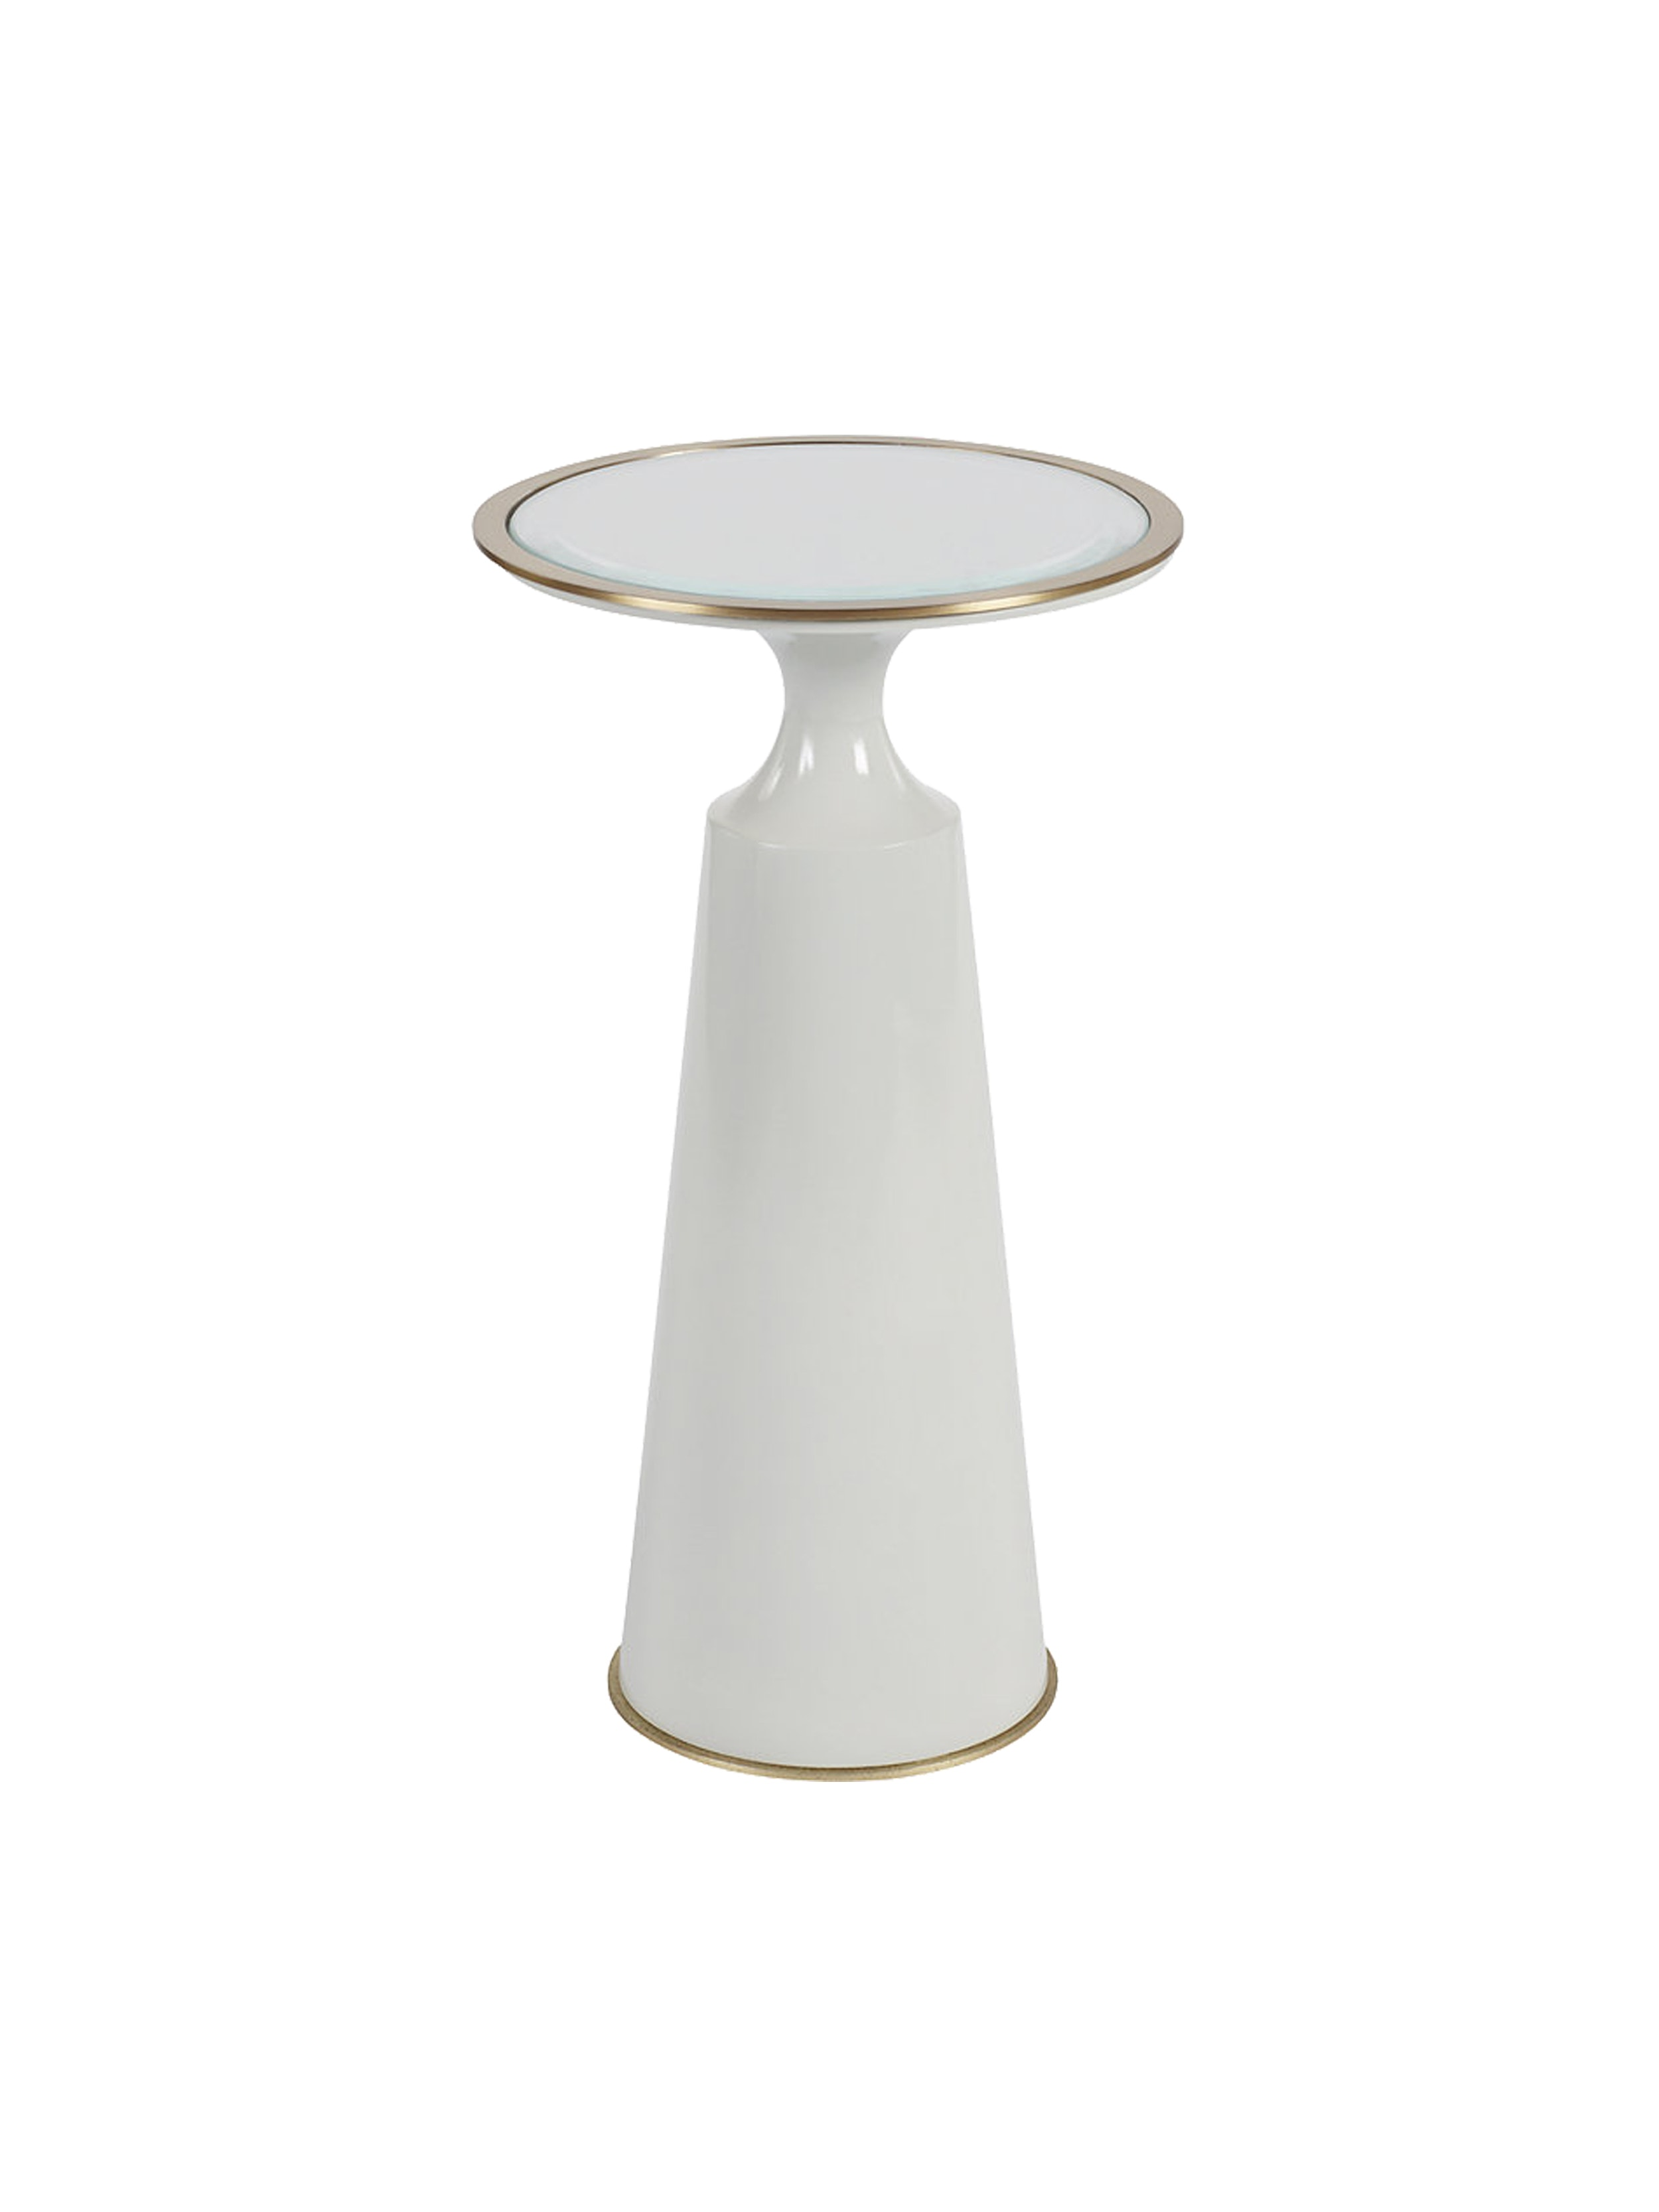 contemporary round accent table with bronze trim putnam mason furniture tables side end glass metal industrial transitional dering hall slim white console cabinets resin outdoor